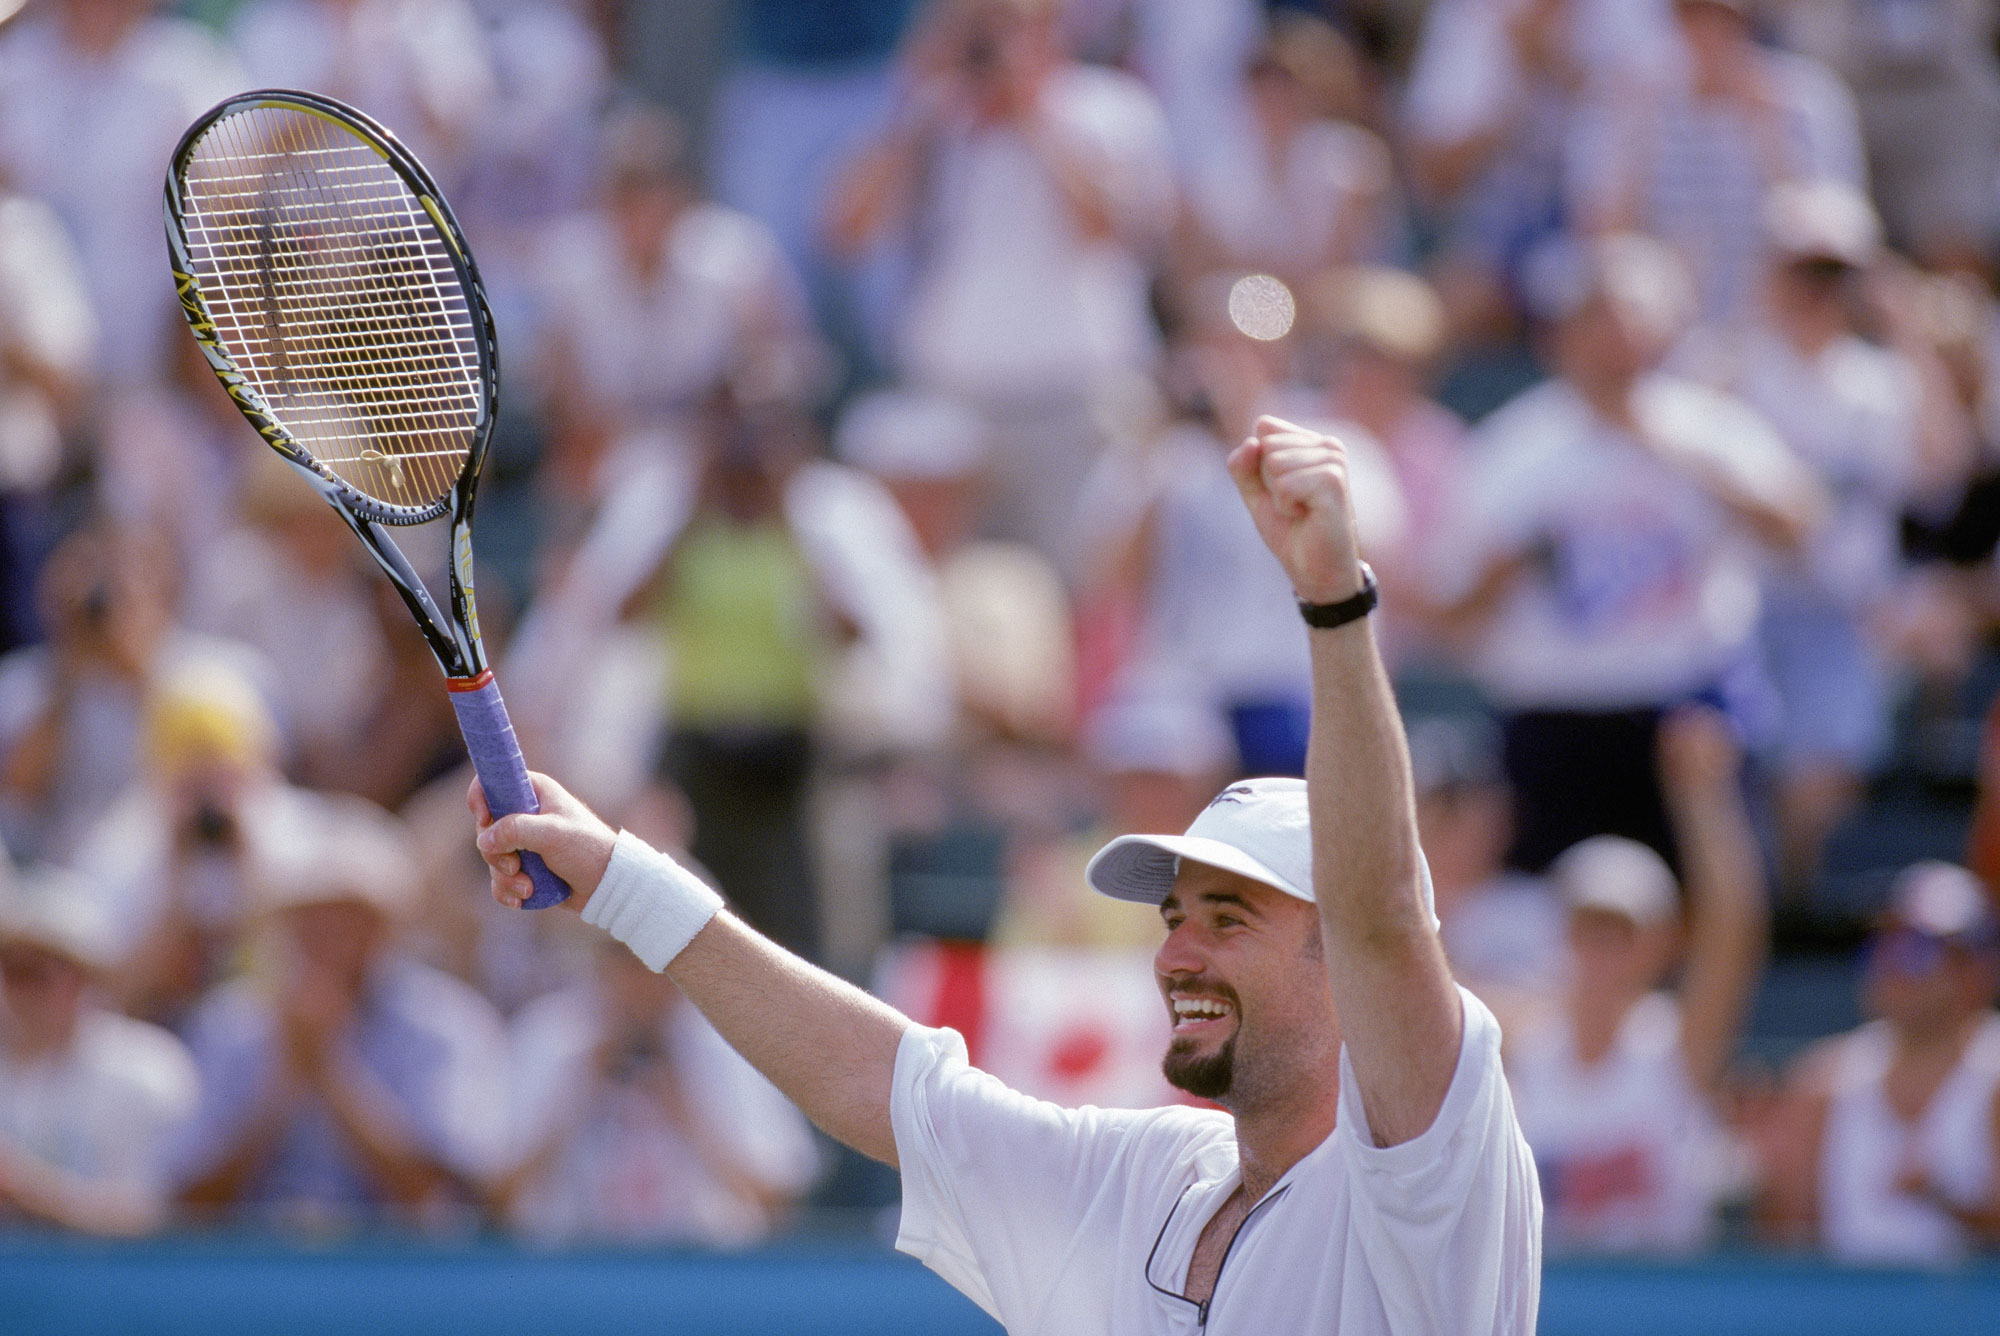 982fa3f3fa ATLANTA - AUGUST 3: Andre Agassi celebrates after defeating Sergi Bruguera  of Spain for the